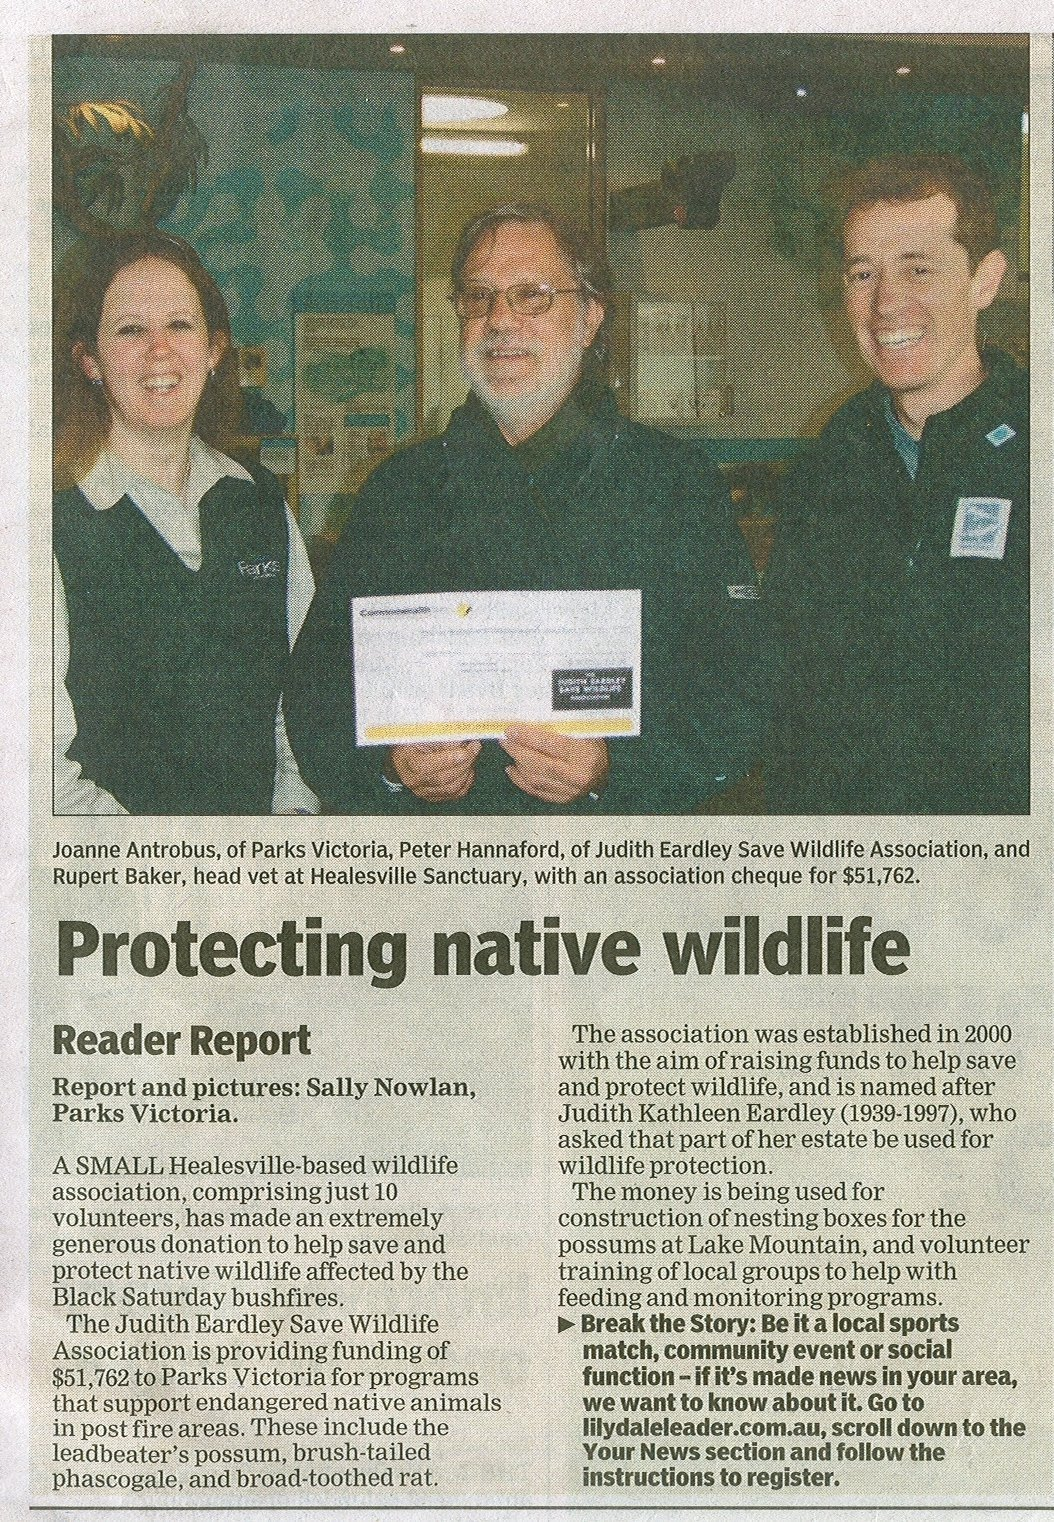 Judith Eardley Save Wildlife Association donation for Leadbeater's Possum after bushfire.